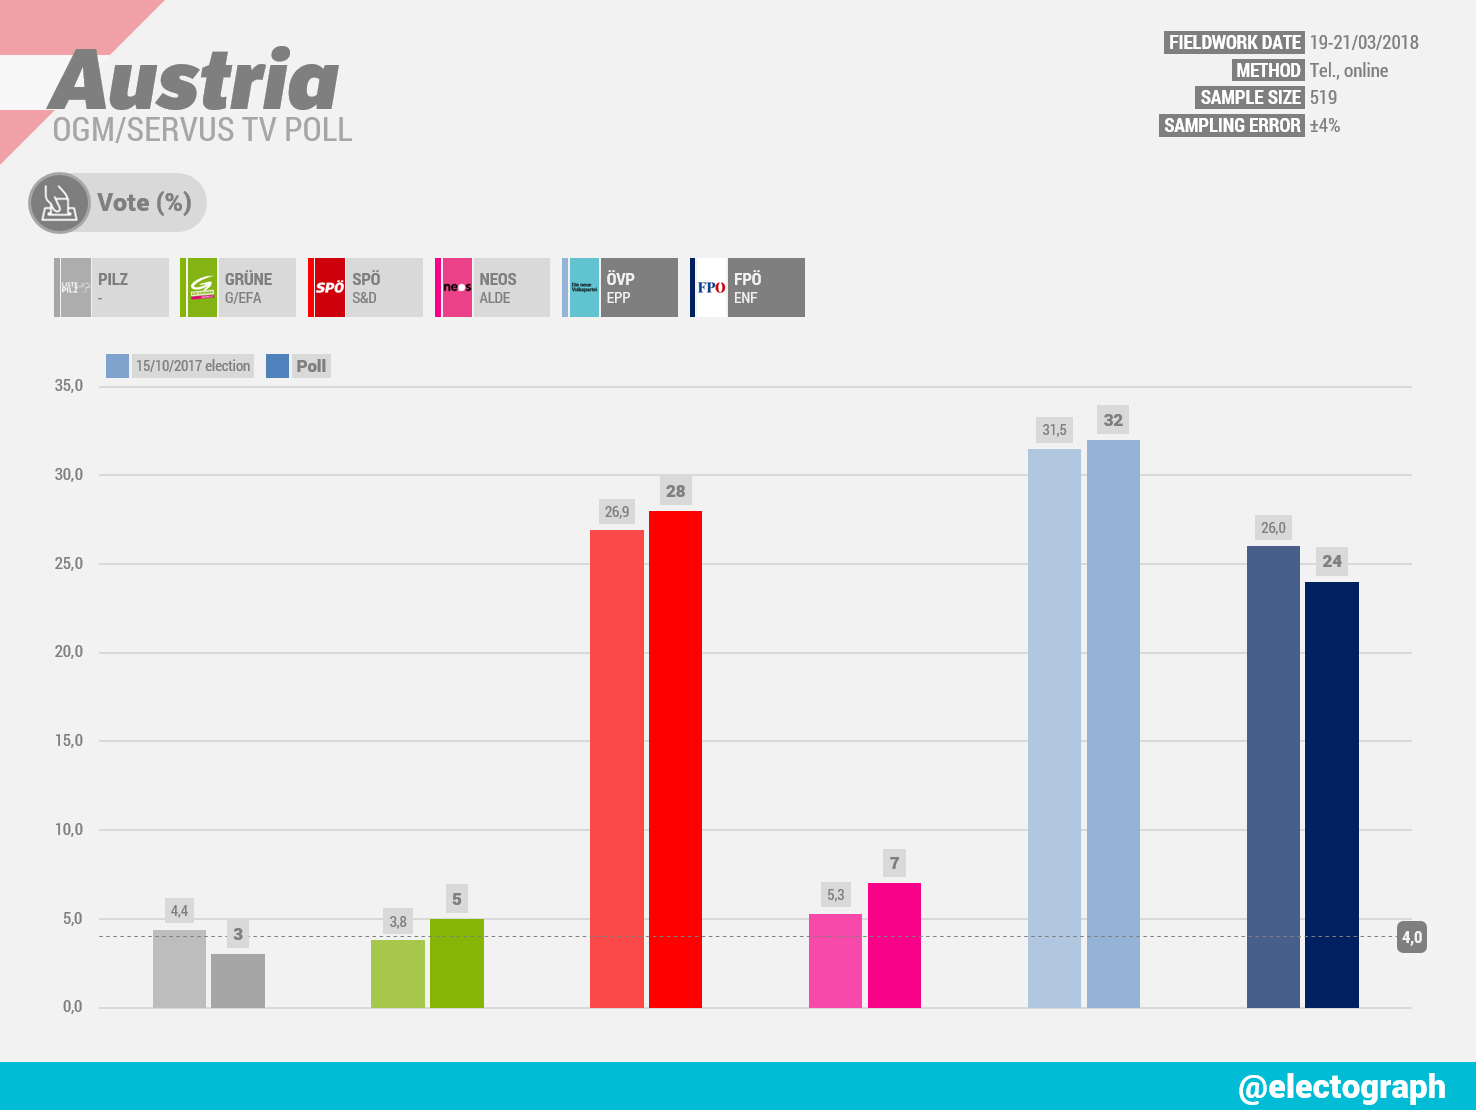 AUSTRIA OGM poll chart for Servus TV, March 2018